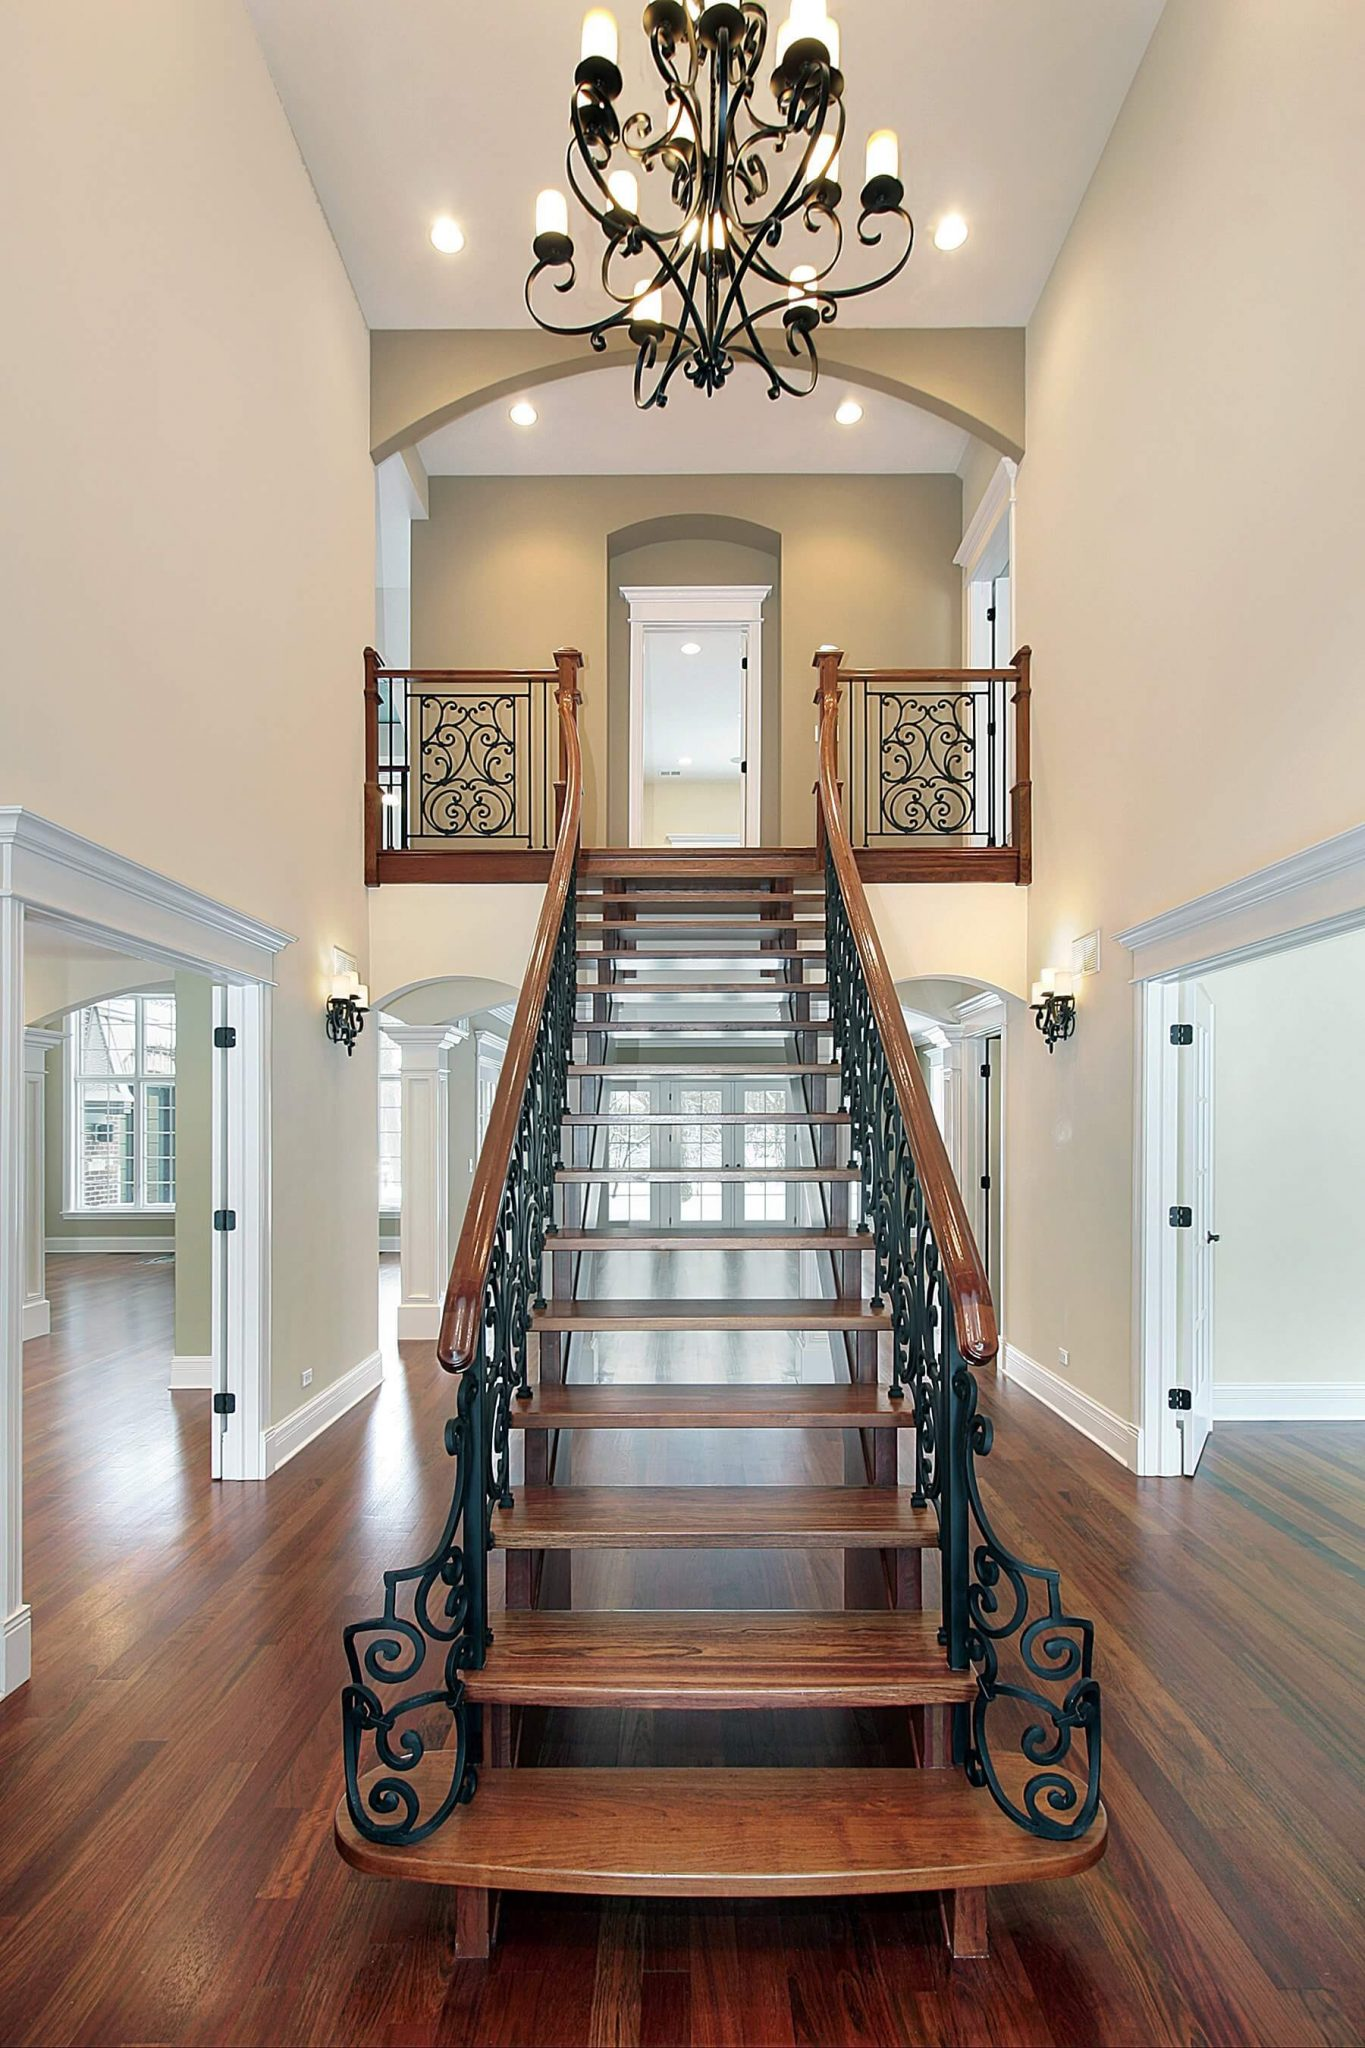 """Open foyer with straight staircase descending from small upper landing. Unfortunately the home is empty so we don't get to see the full effect with furniture and that """"lived in"""" look."""